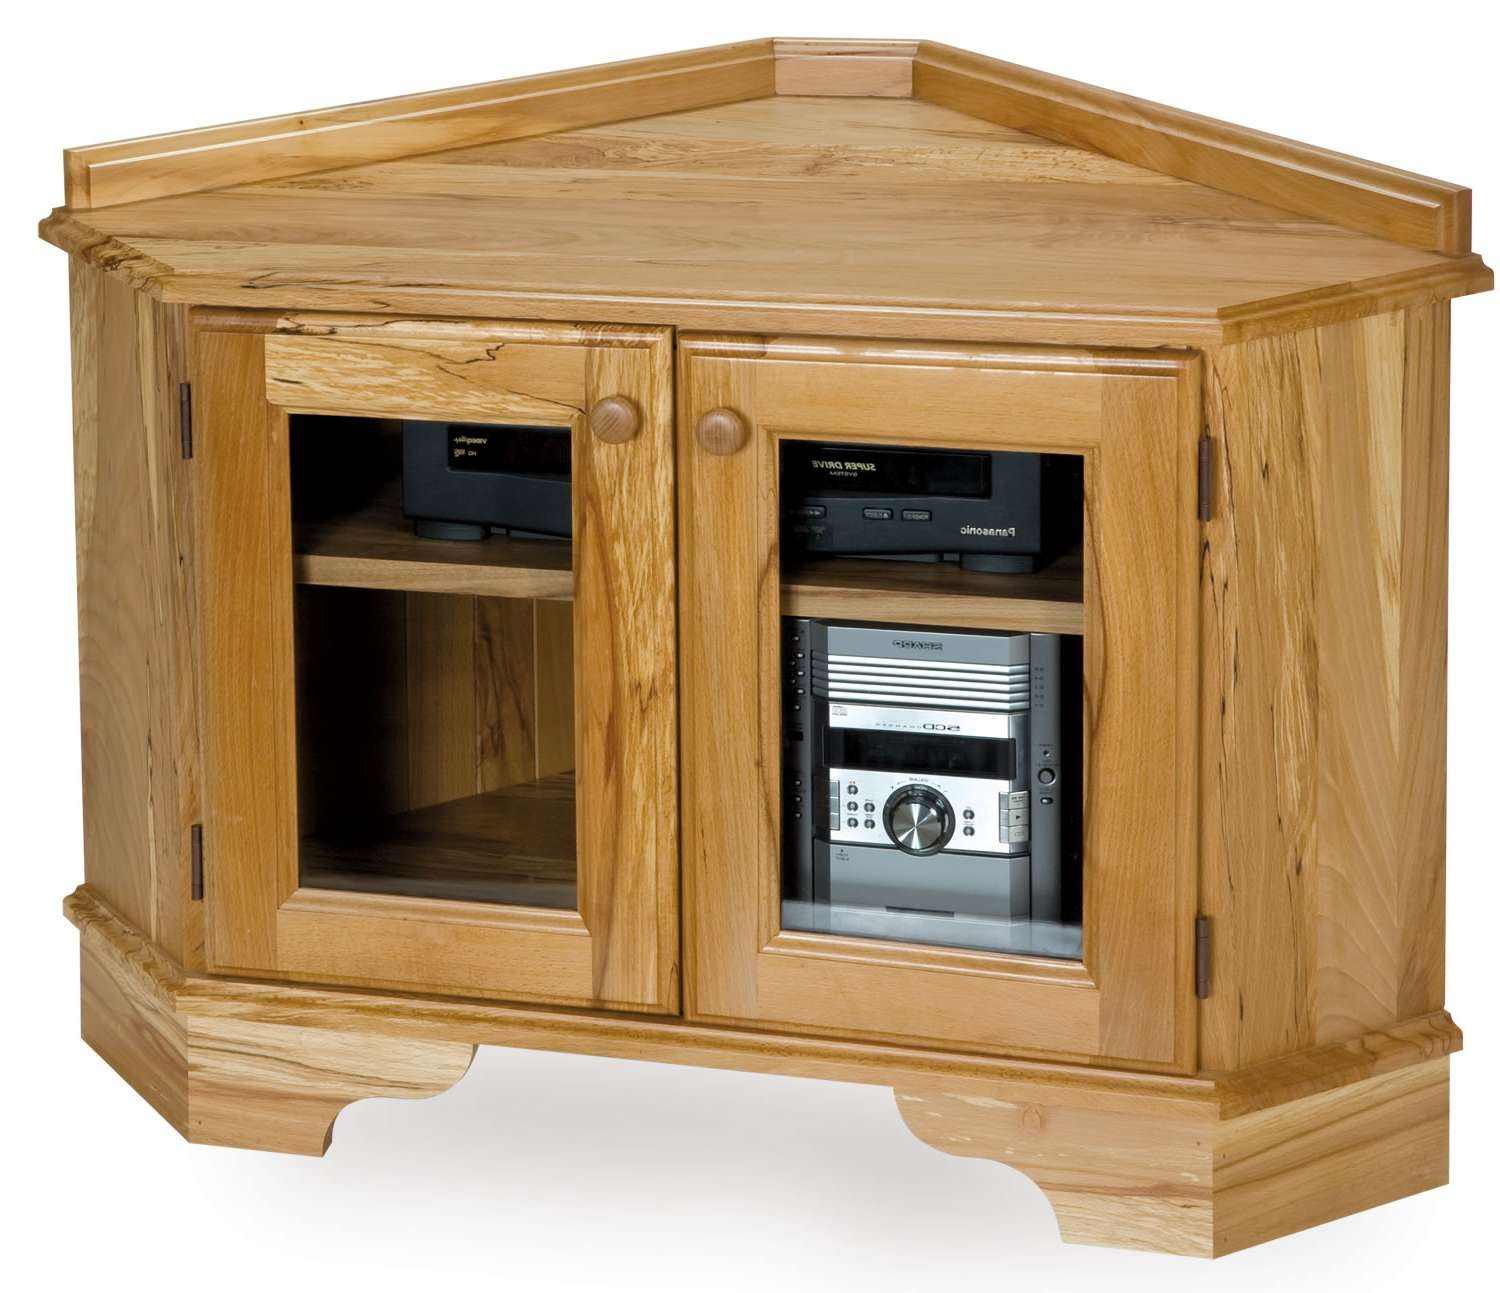 Creative Wooden Corner Tv Cabinet Beautiful Home Design Creative Pertaining To Solid Wood Corner Tv Cabinets (View 15 of 20)